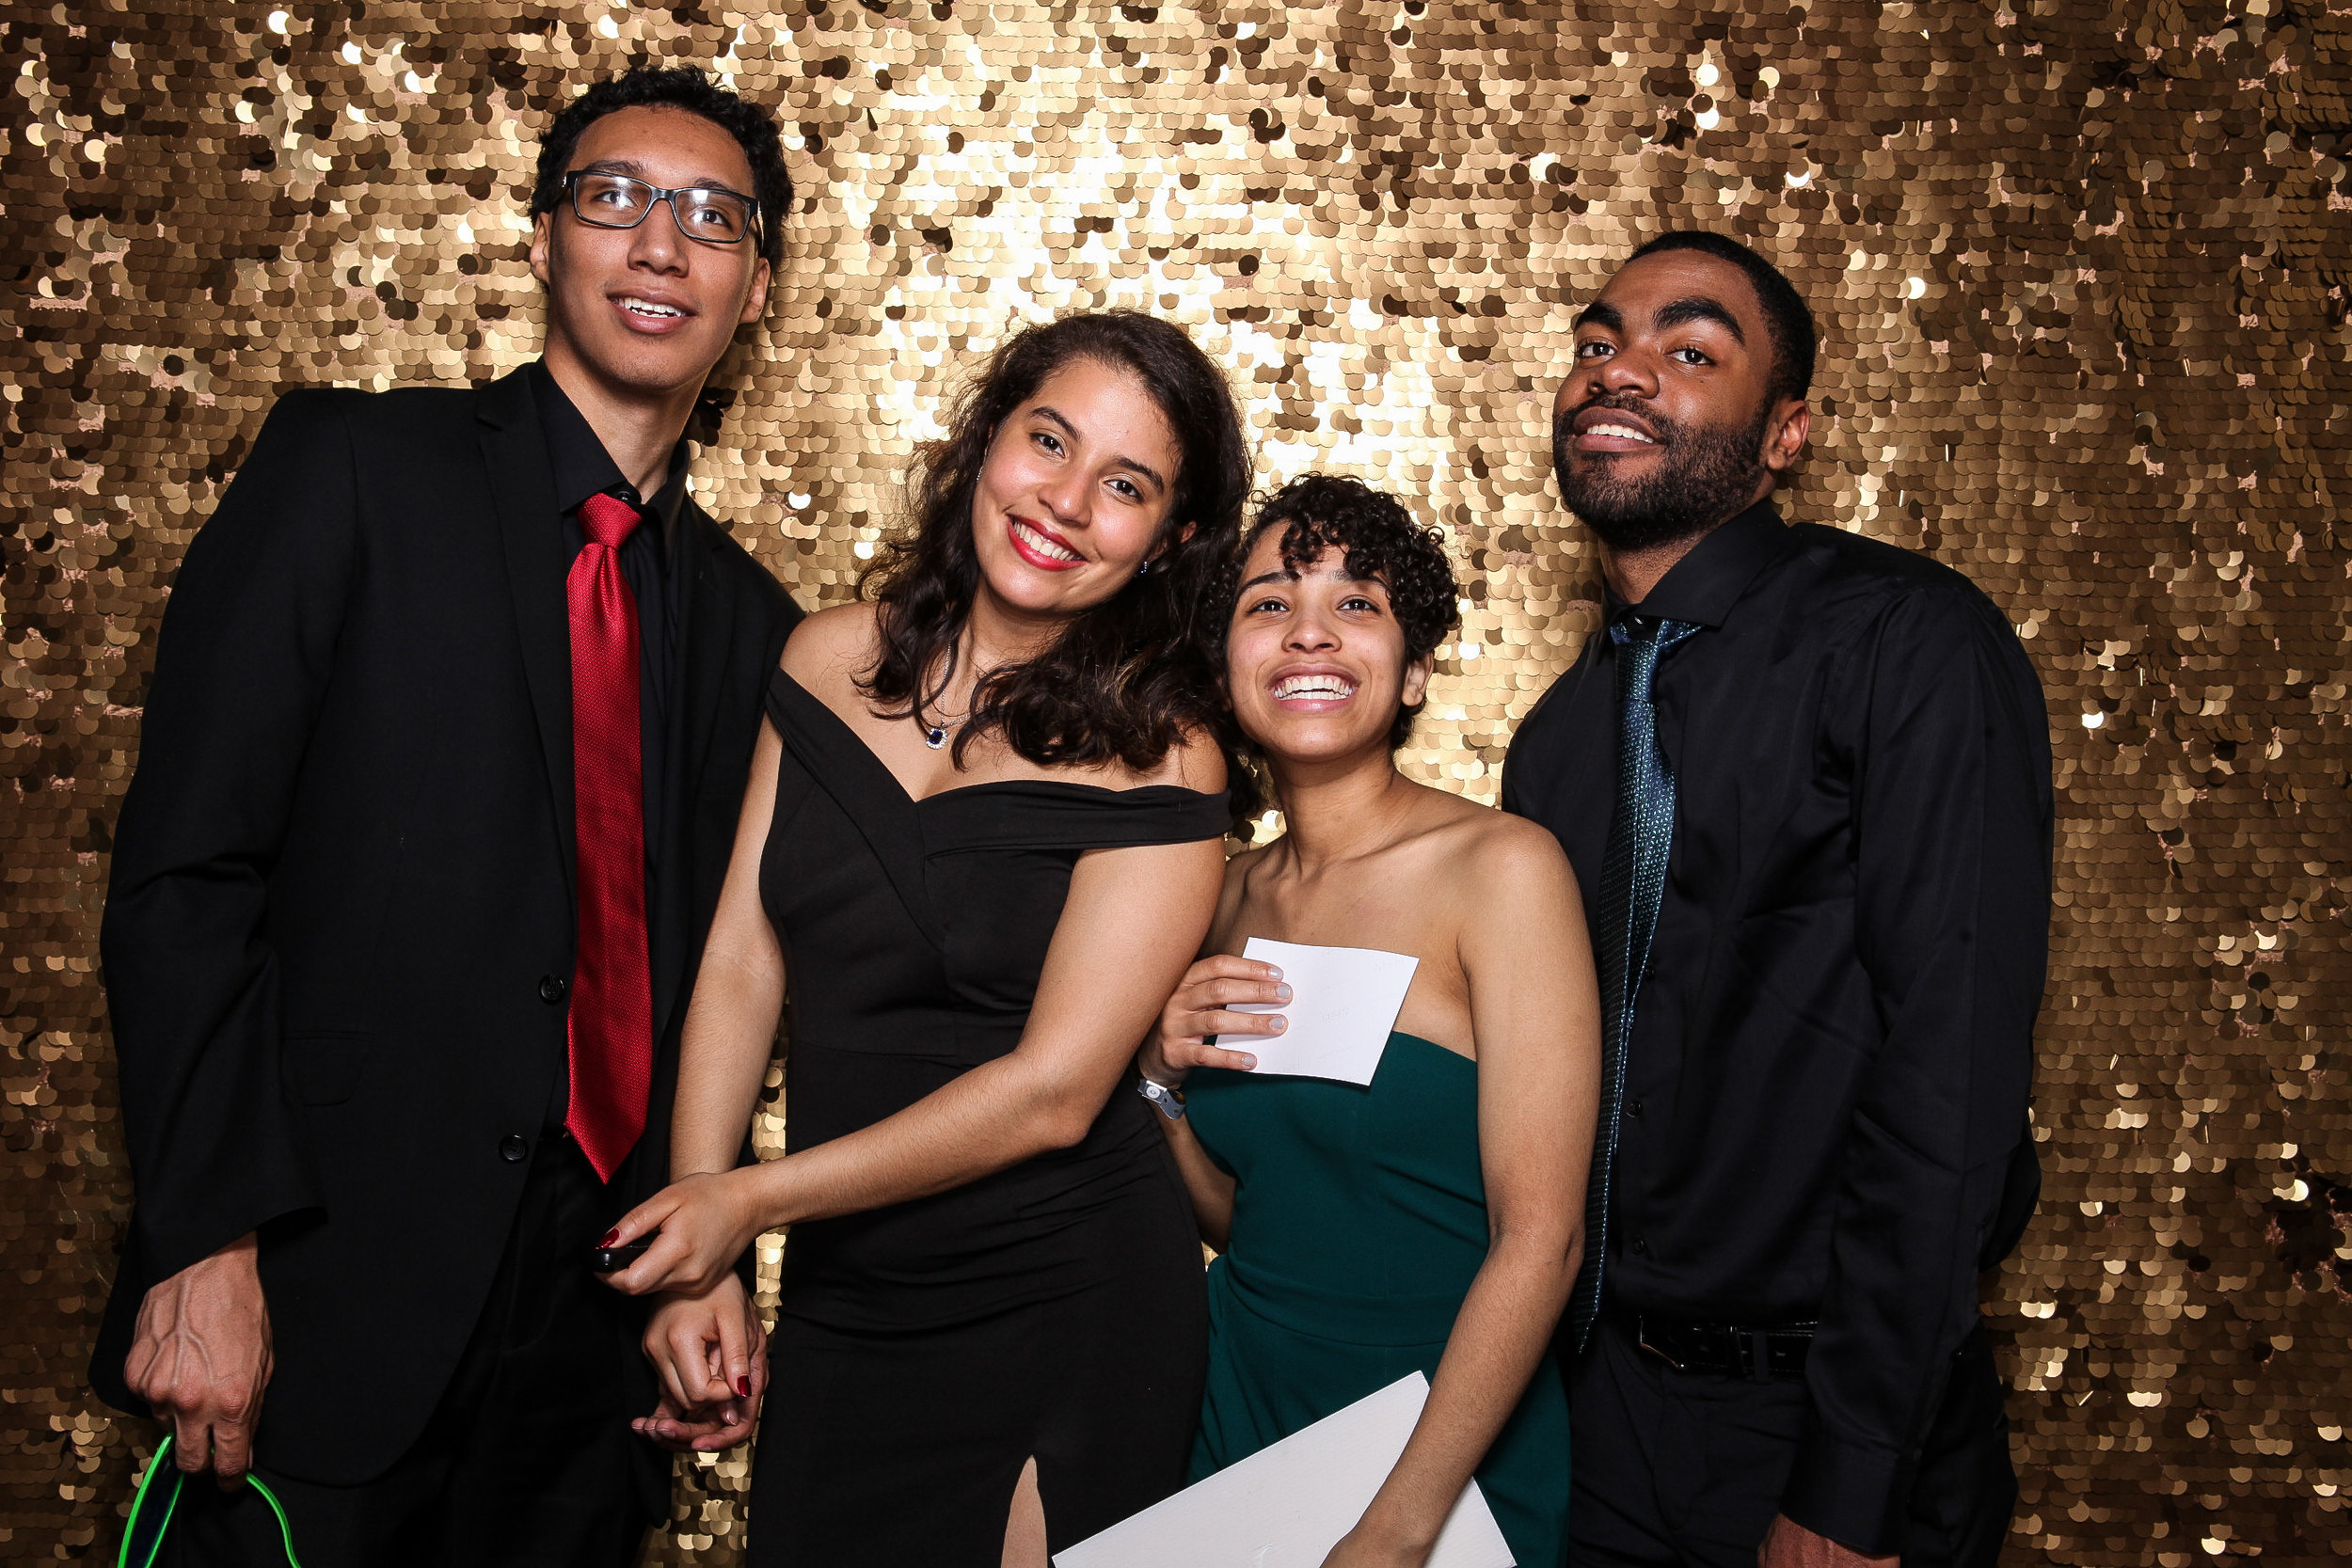 20190503_Adelphi_Senior_Formal-302.jpg